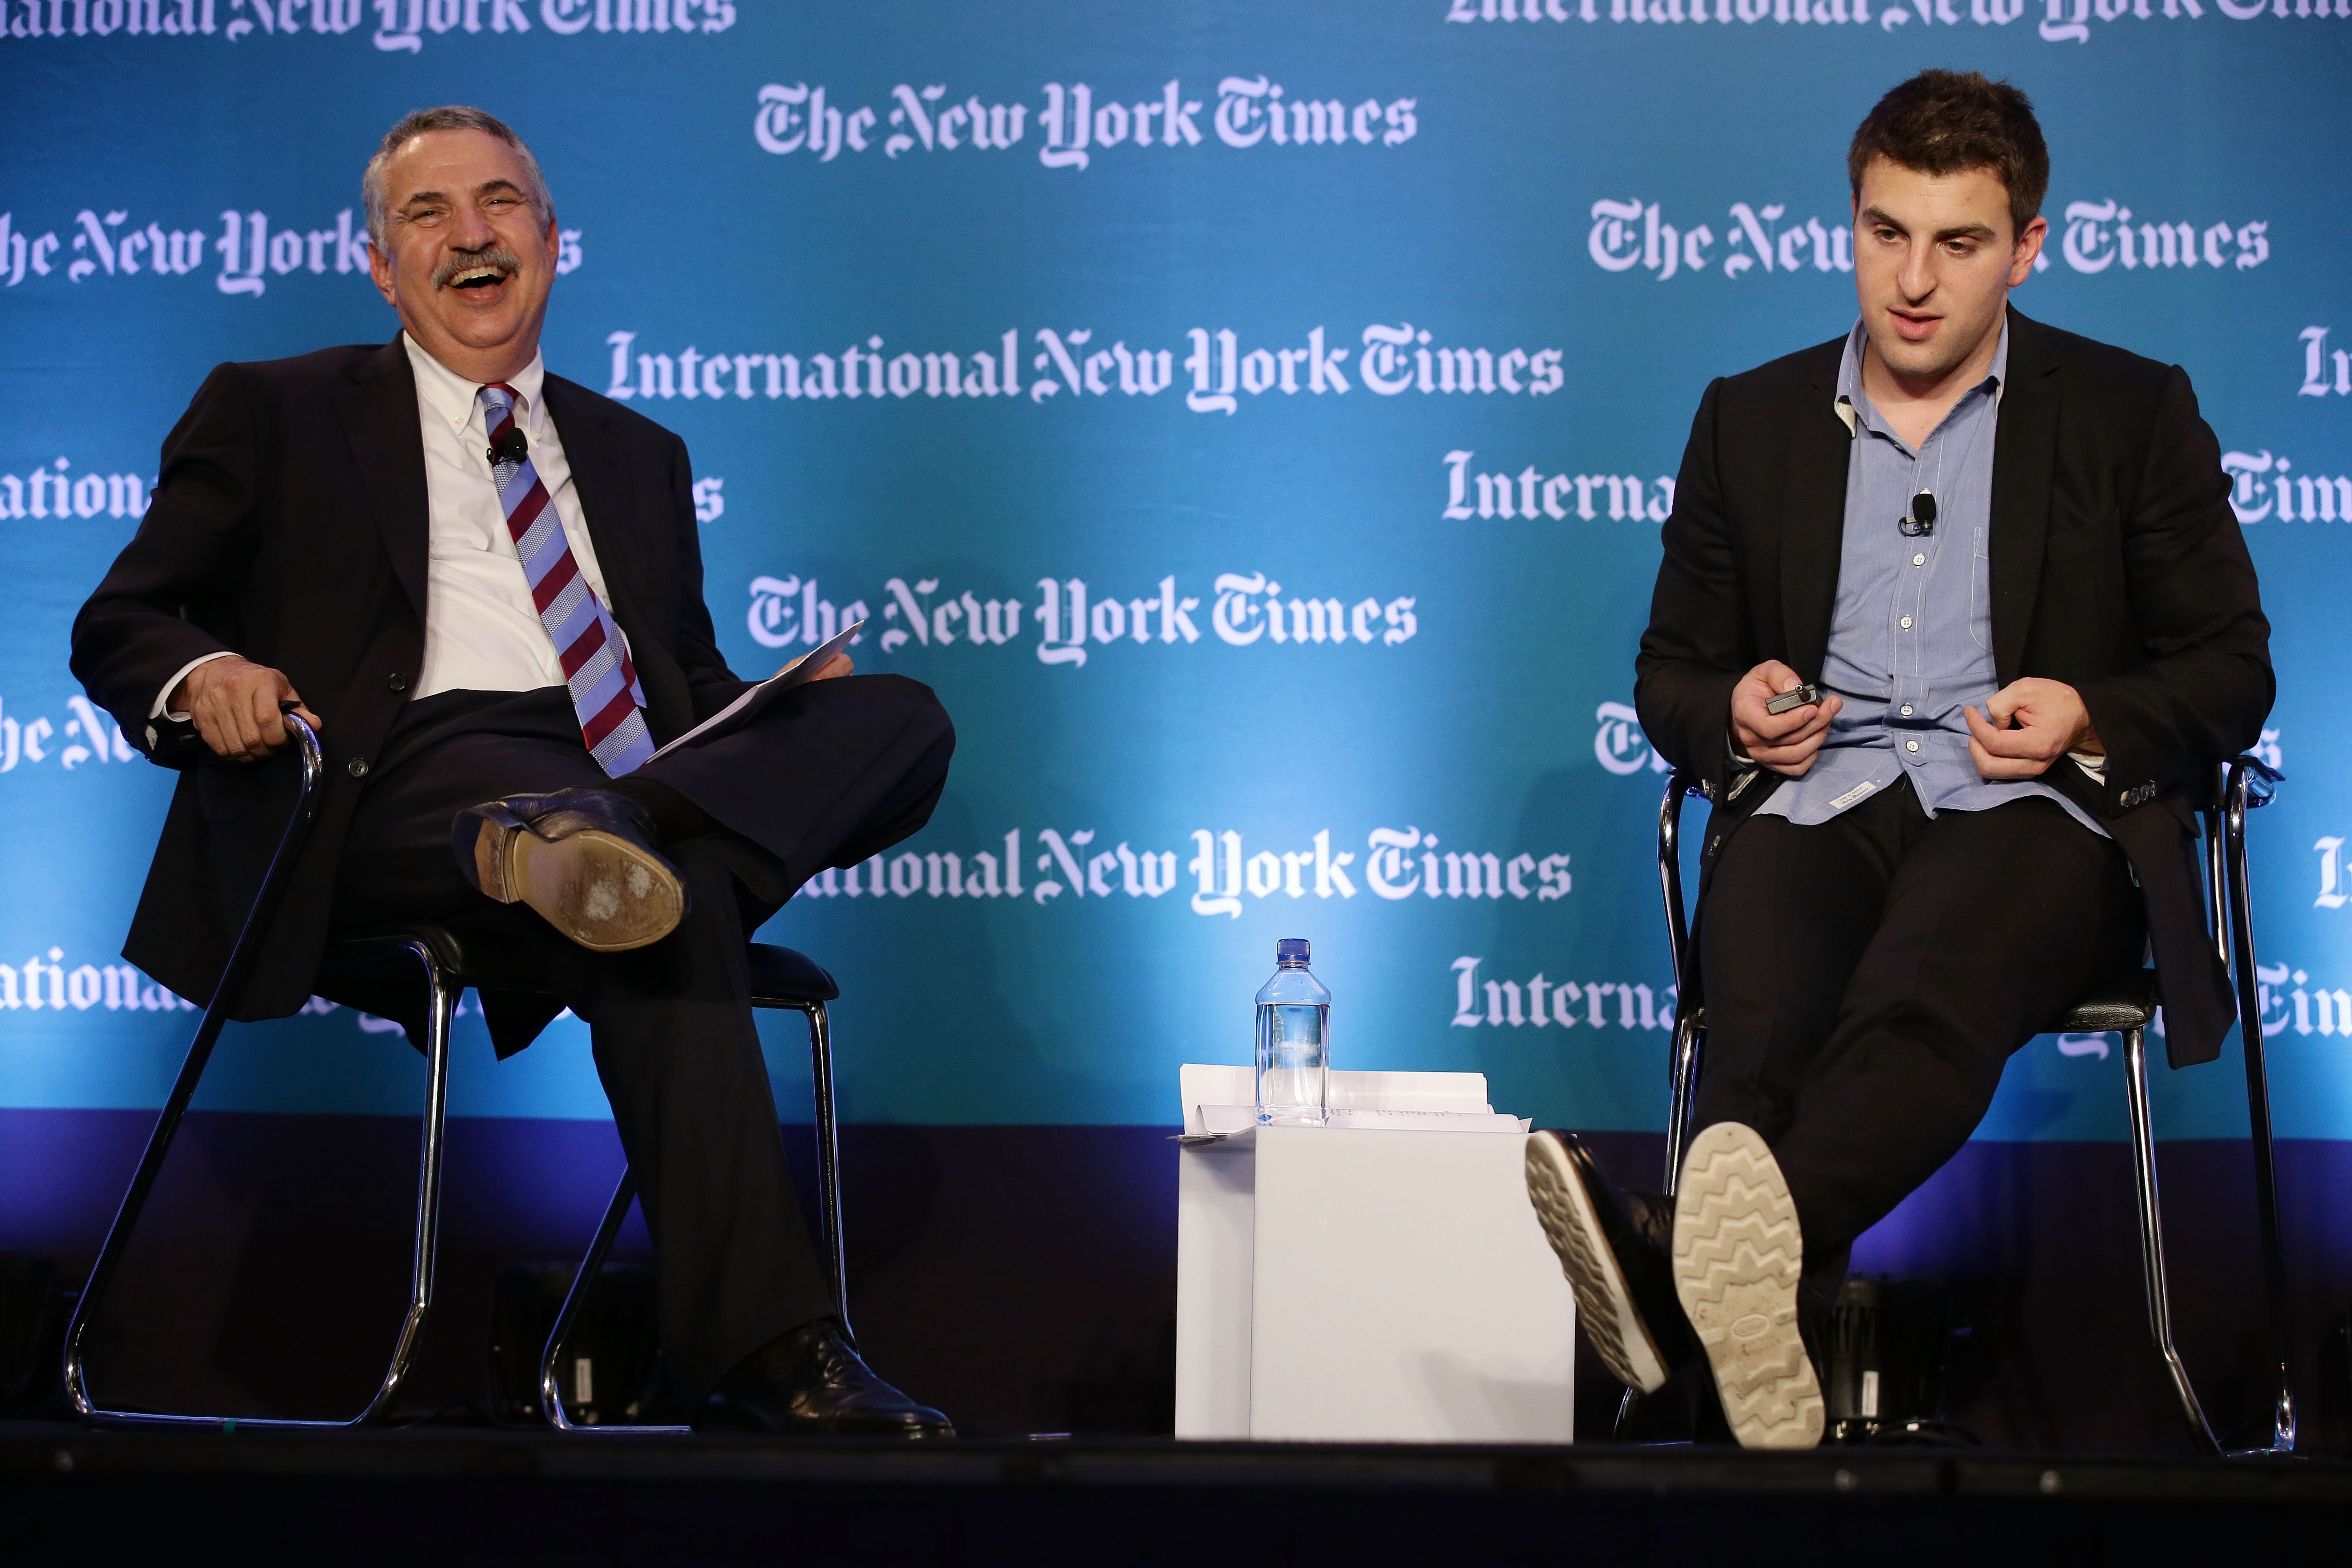 Thomas L. Friedman, Op-Ed columnist, The New York Times(L) speaks with Brian Chesky, CEO and Co-Founder, AirBNB during the International New York Times Global Forum Singapore - Thomas L. Friedman's The Next New World Global Forum Asia at the Four Seasons Hotel on October 25, 2013 in Singapore. (Photo by Suhaimi Abdullah/Getty Images for International New York Times)